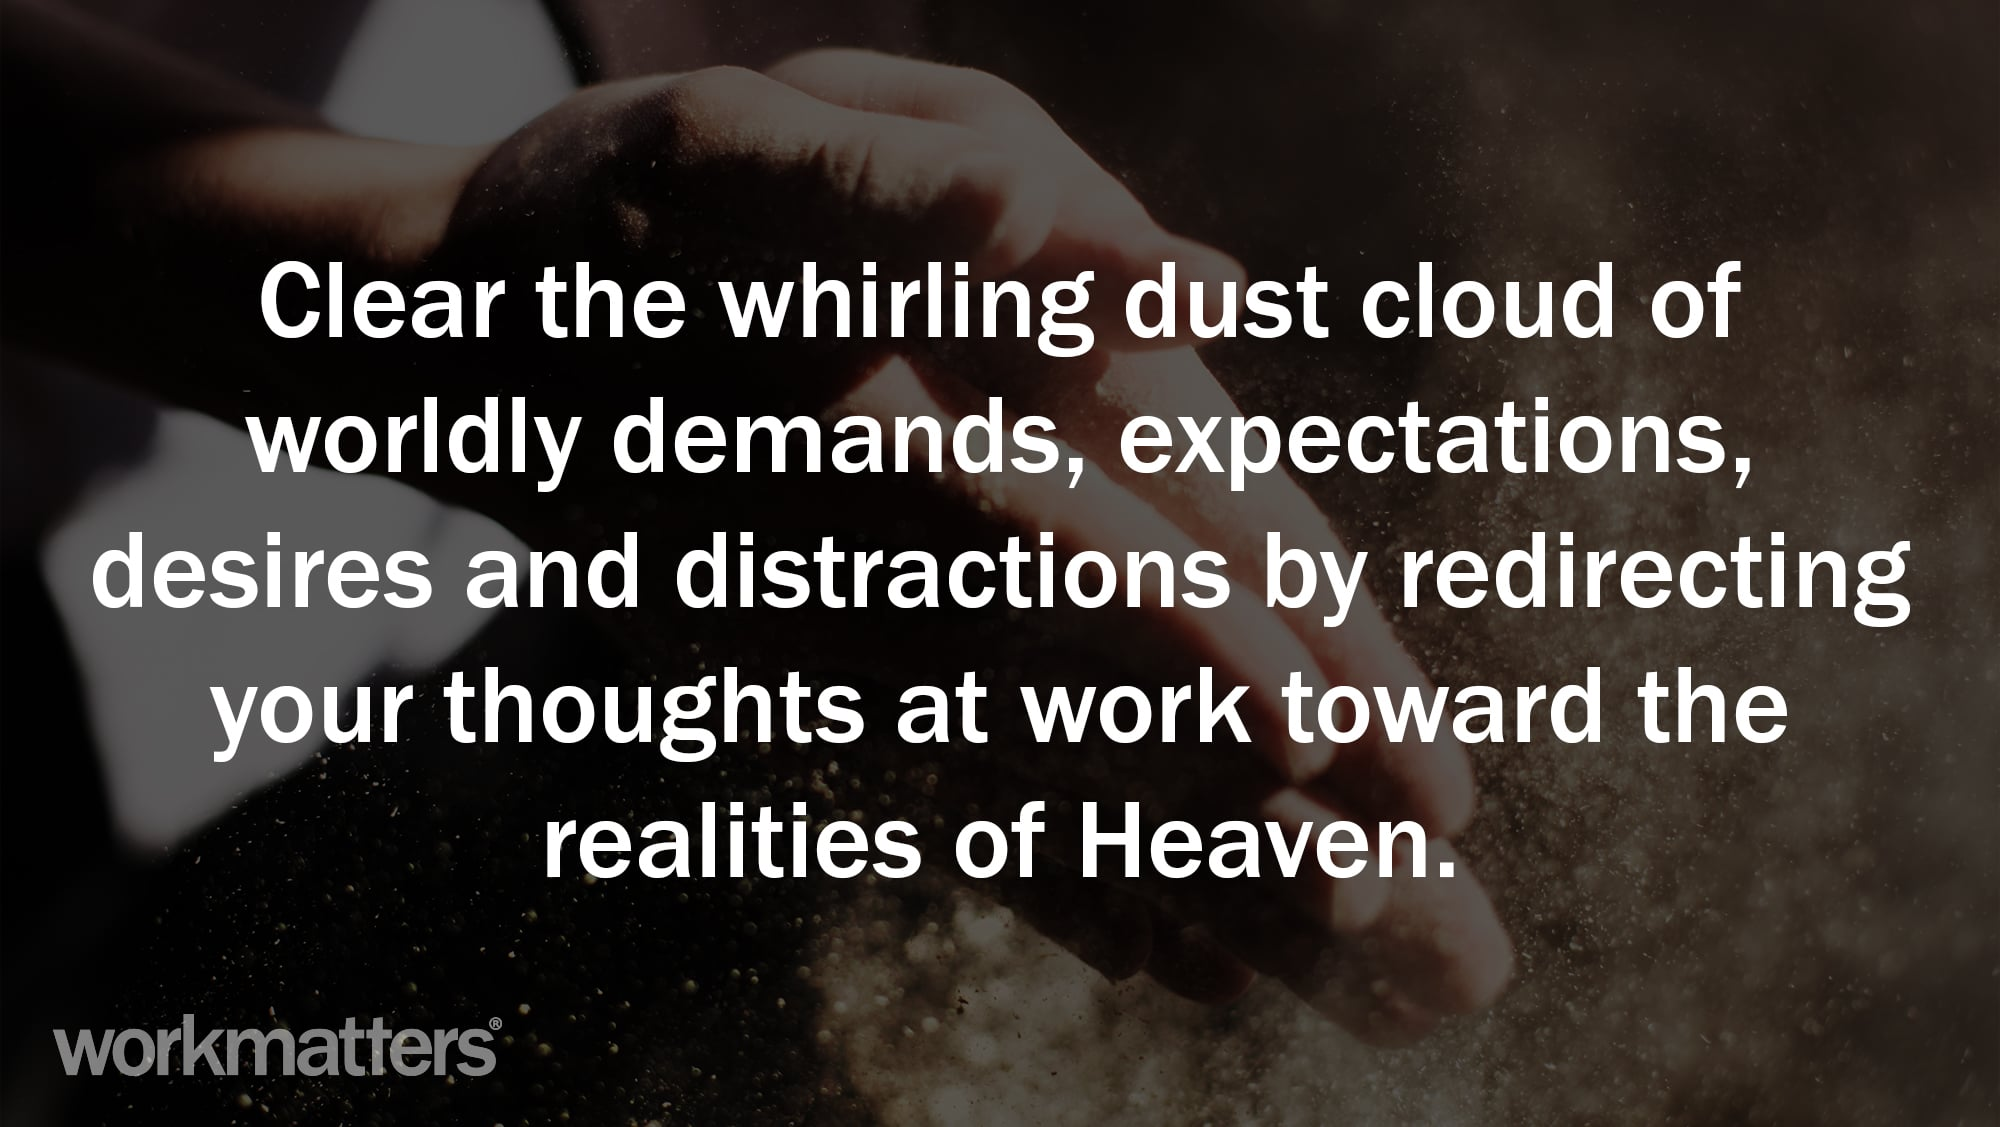 Redirect Your Thoughts to the Realities of Heaven